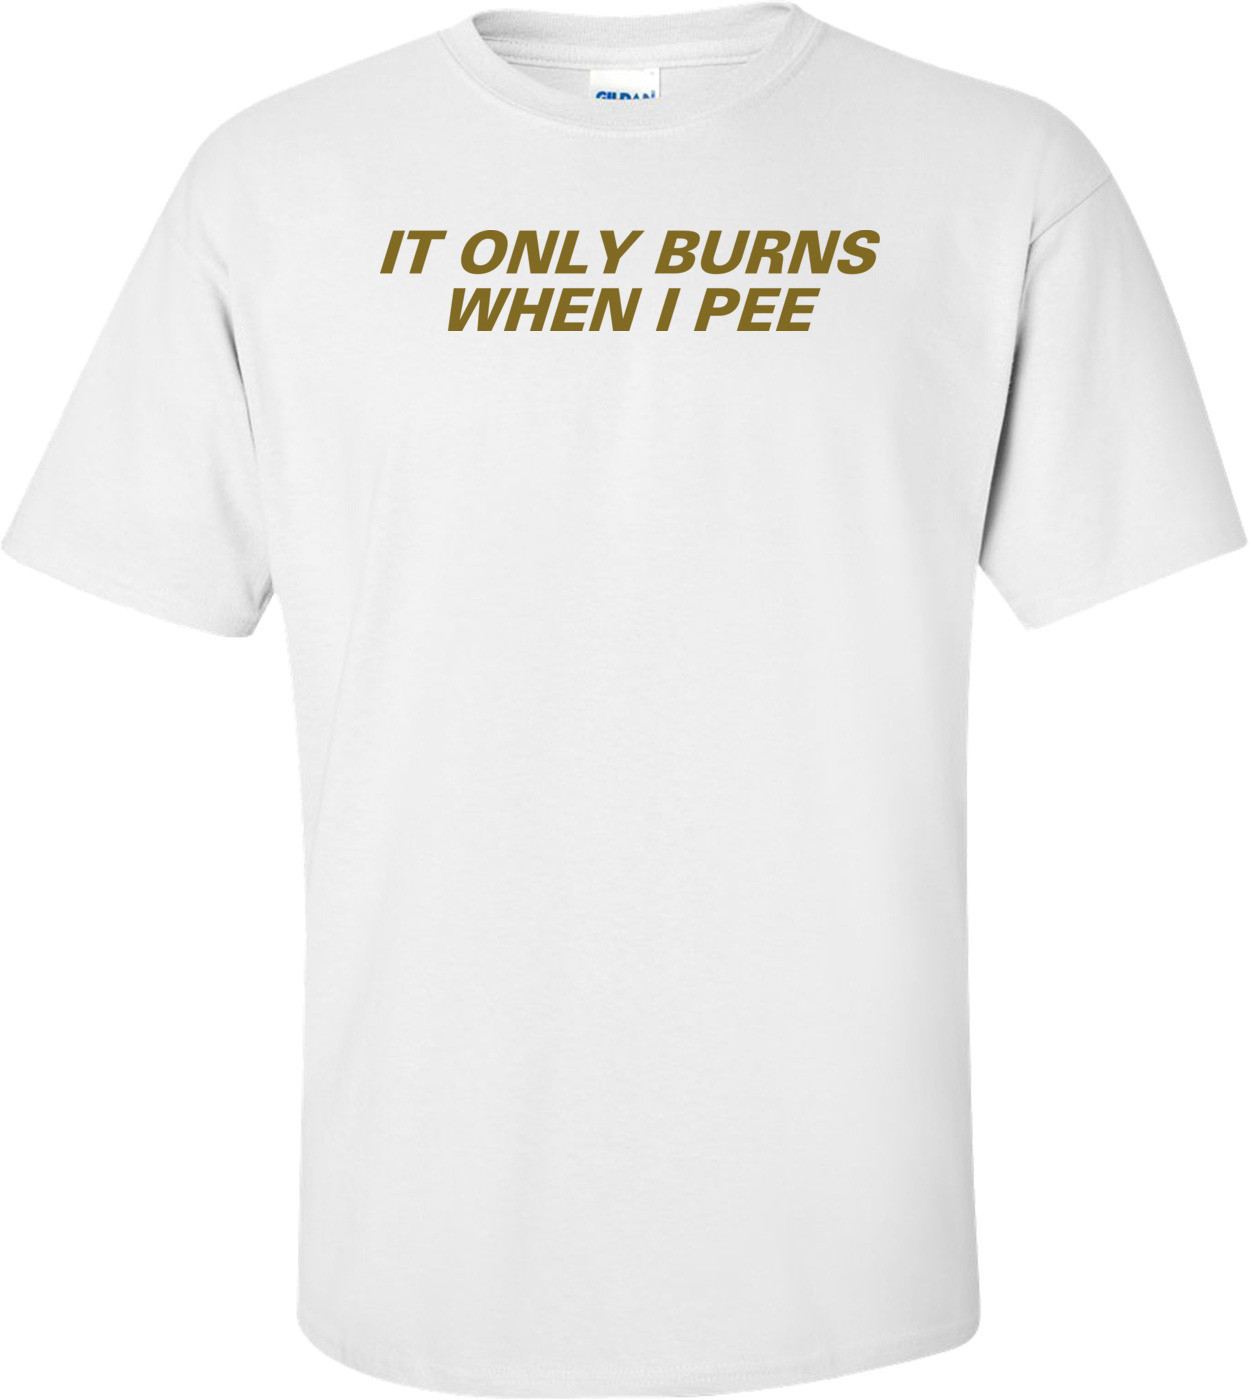 It Only Burns When I Pee T-Shirt